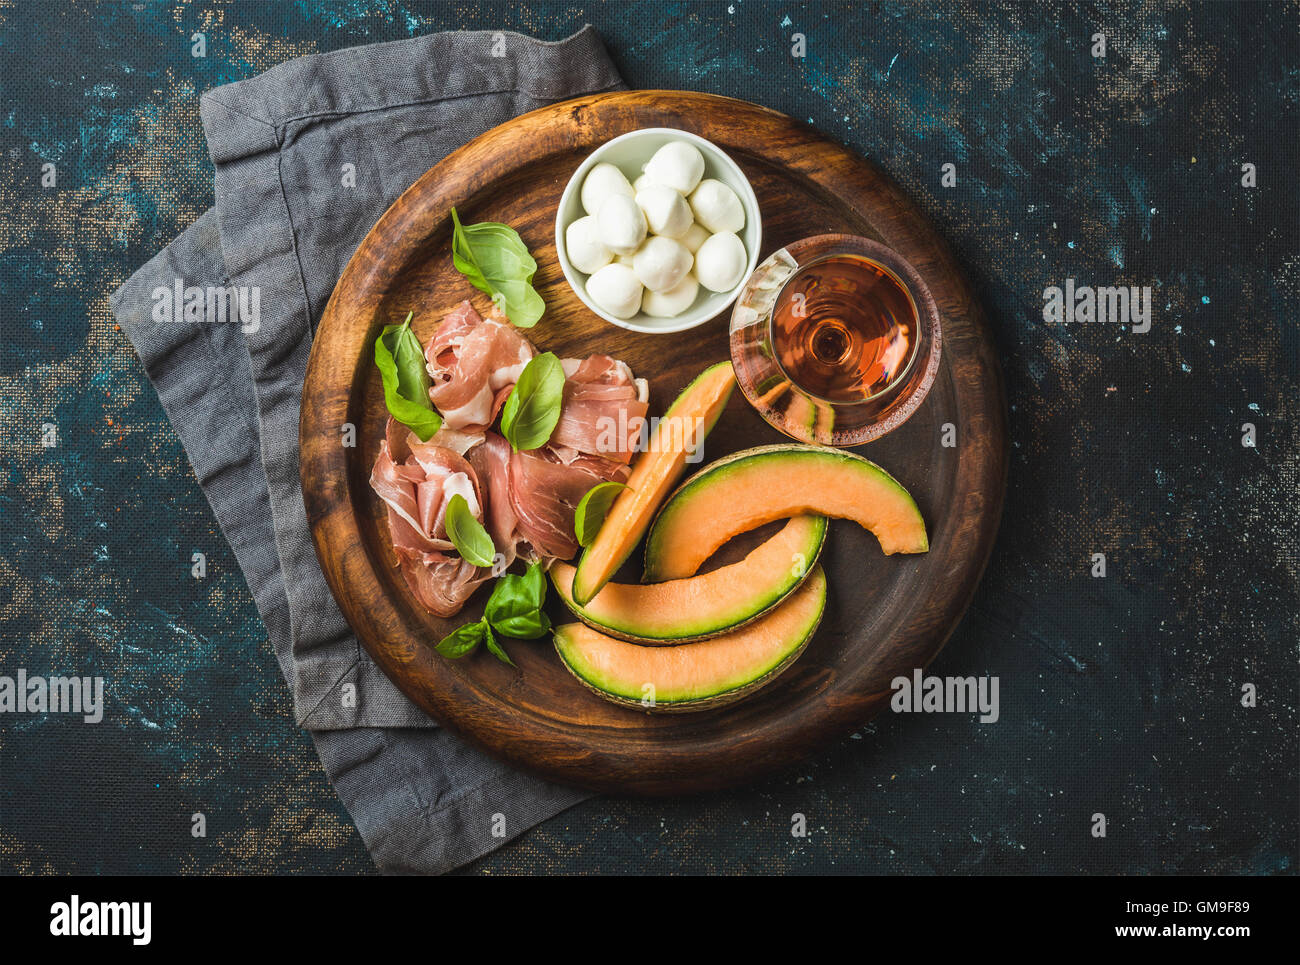 Melon cantaloup, prosciutto, fromage mozzarella et verre de rose Photo Stock